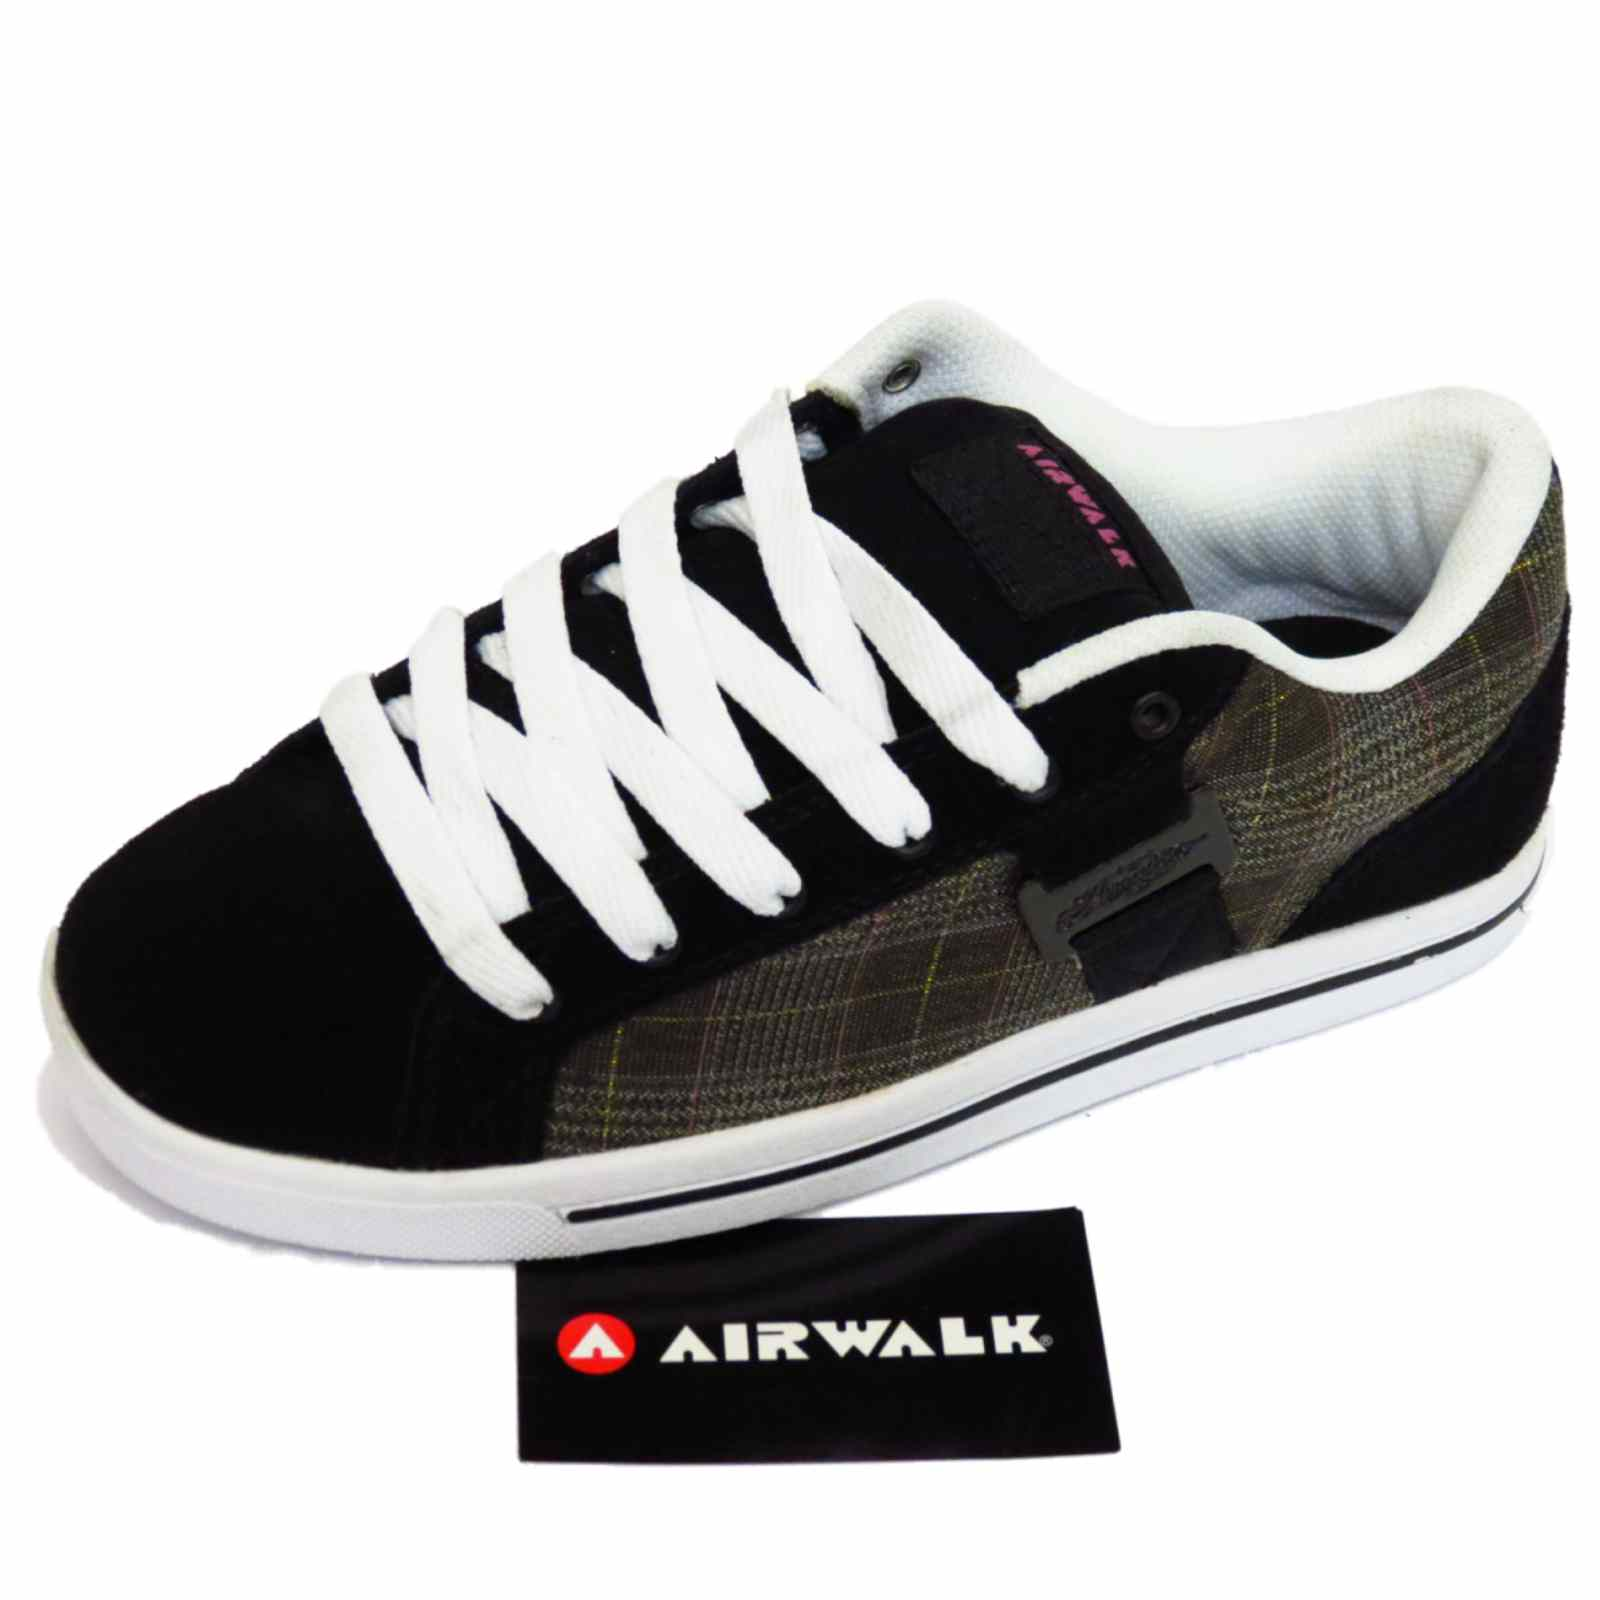 Sentinel LADIES BLACK LEATHER AIRWALK LACE-UP SKATER TRAINERS CASUAL SHOES  PUMPS UK 6-9 33cad876c